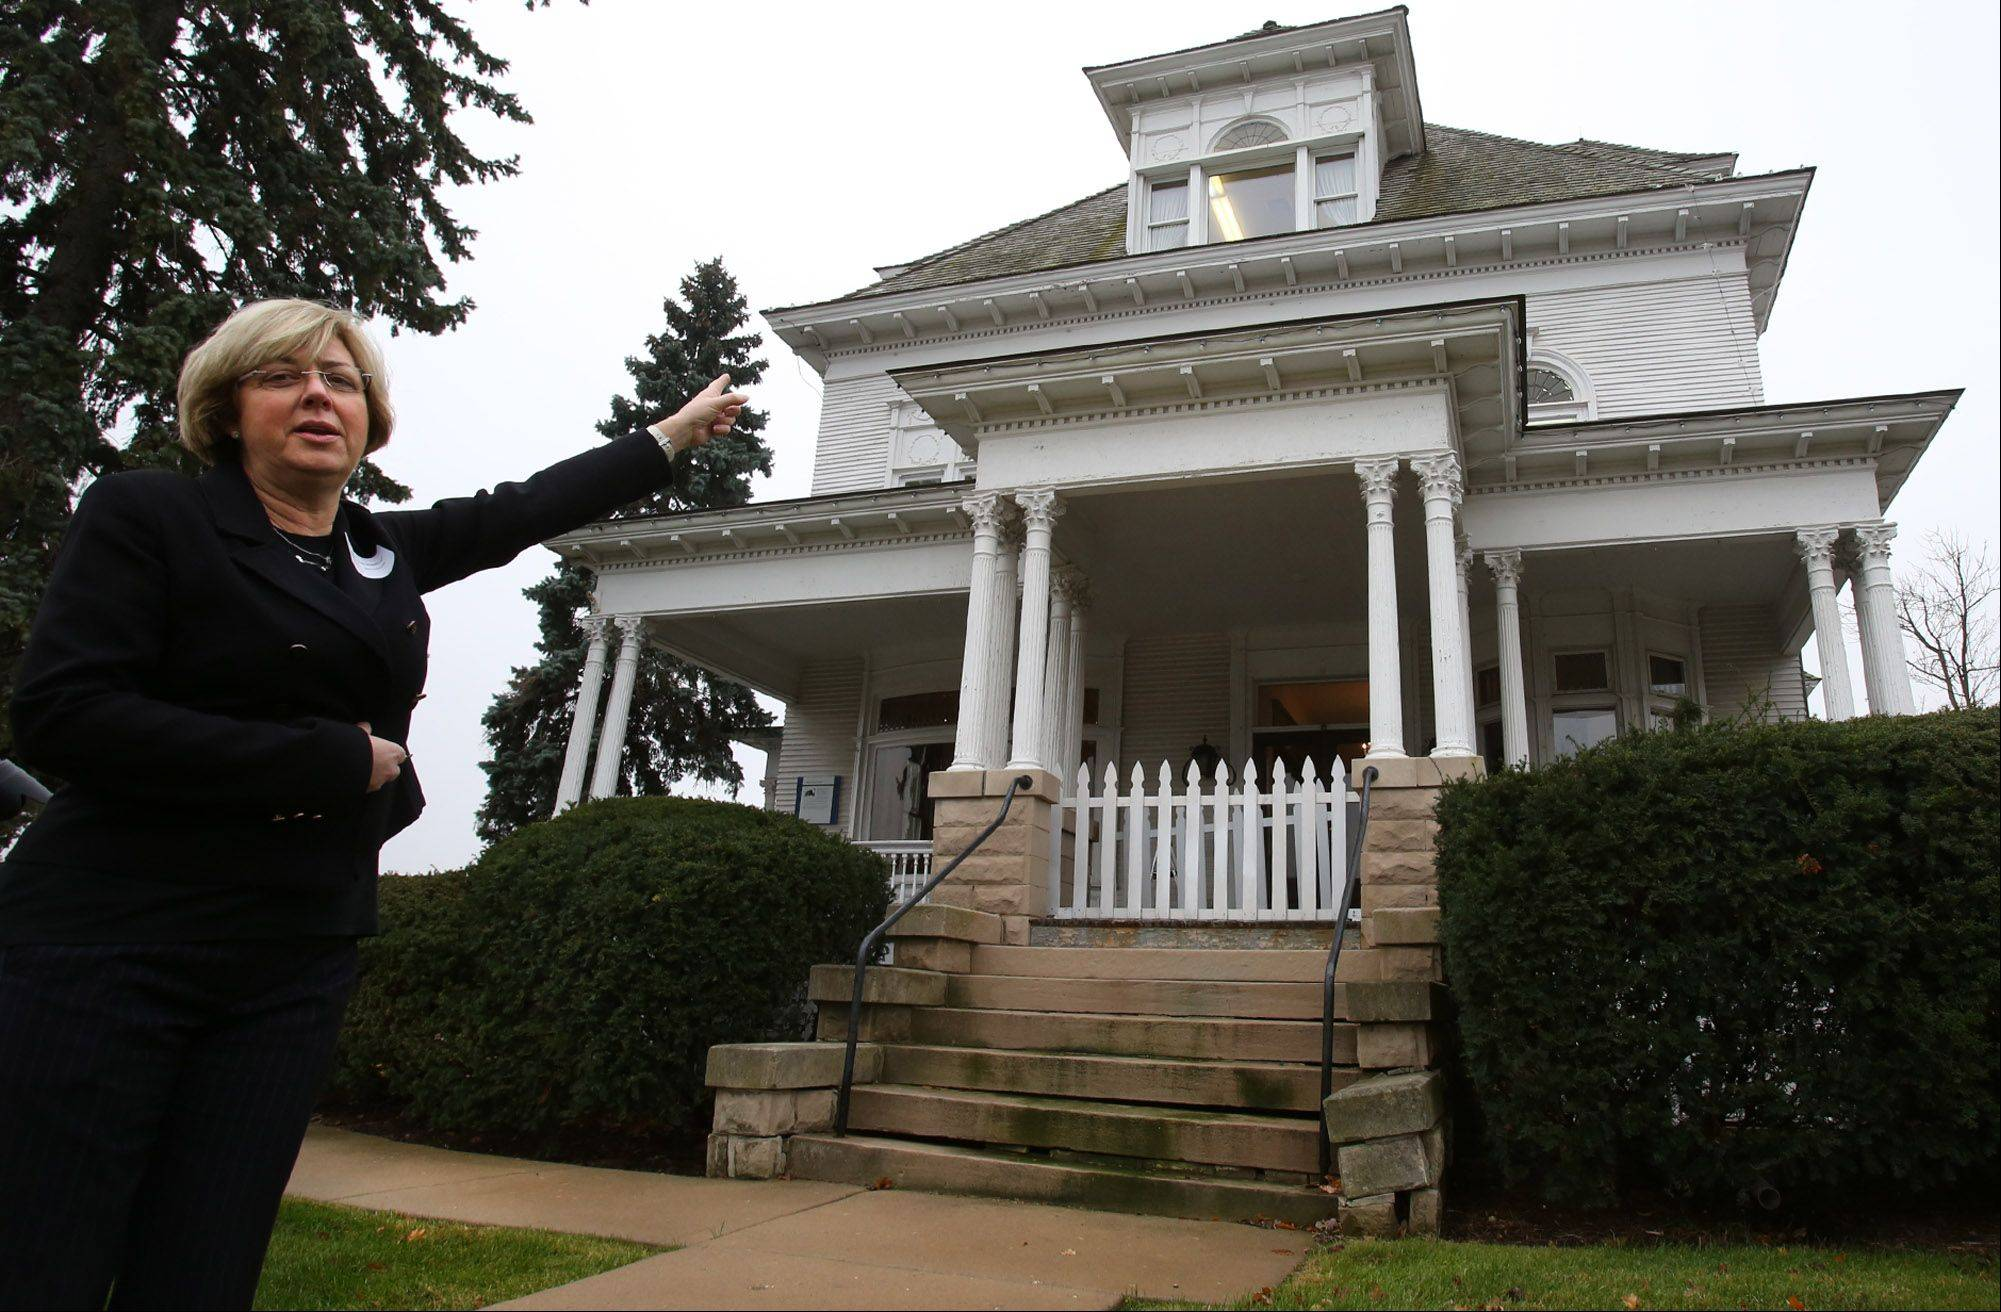 Beth Raseman, volunteer coordinator for the Barrington White House renovation committee, said $5 million in donations is necessary to restore the mansion and create a self-sustaining cultural and community center.